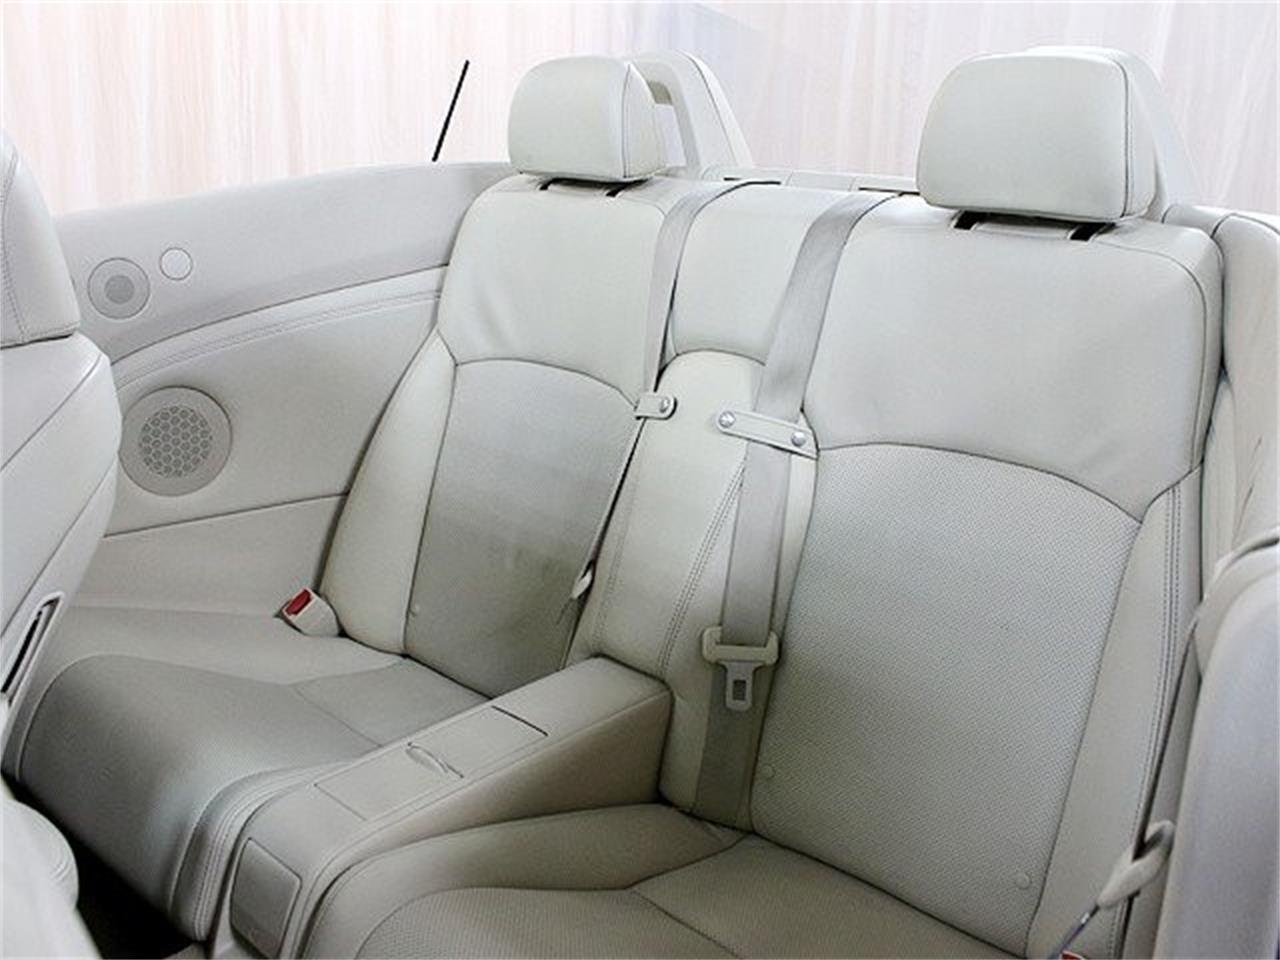 Large Picture of 2010 Lexus IS350 located in Illinois Offered by Auto Gallery Chicago - QIG4